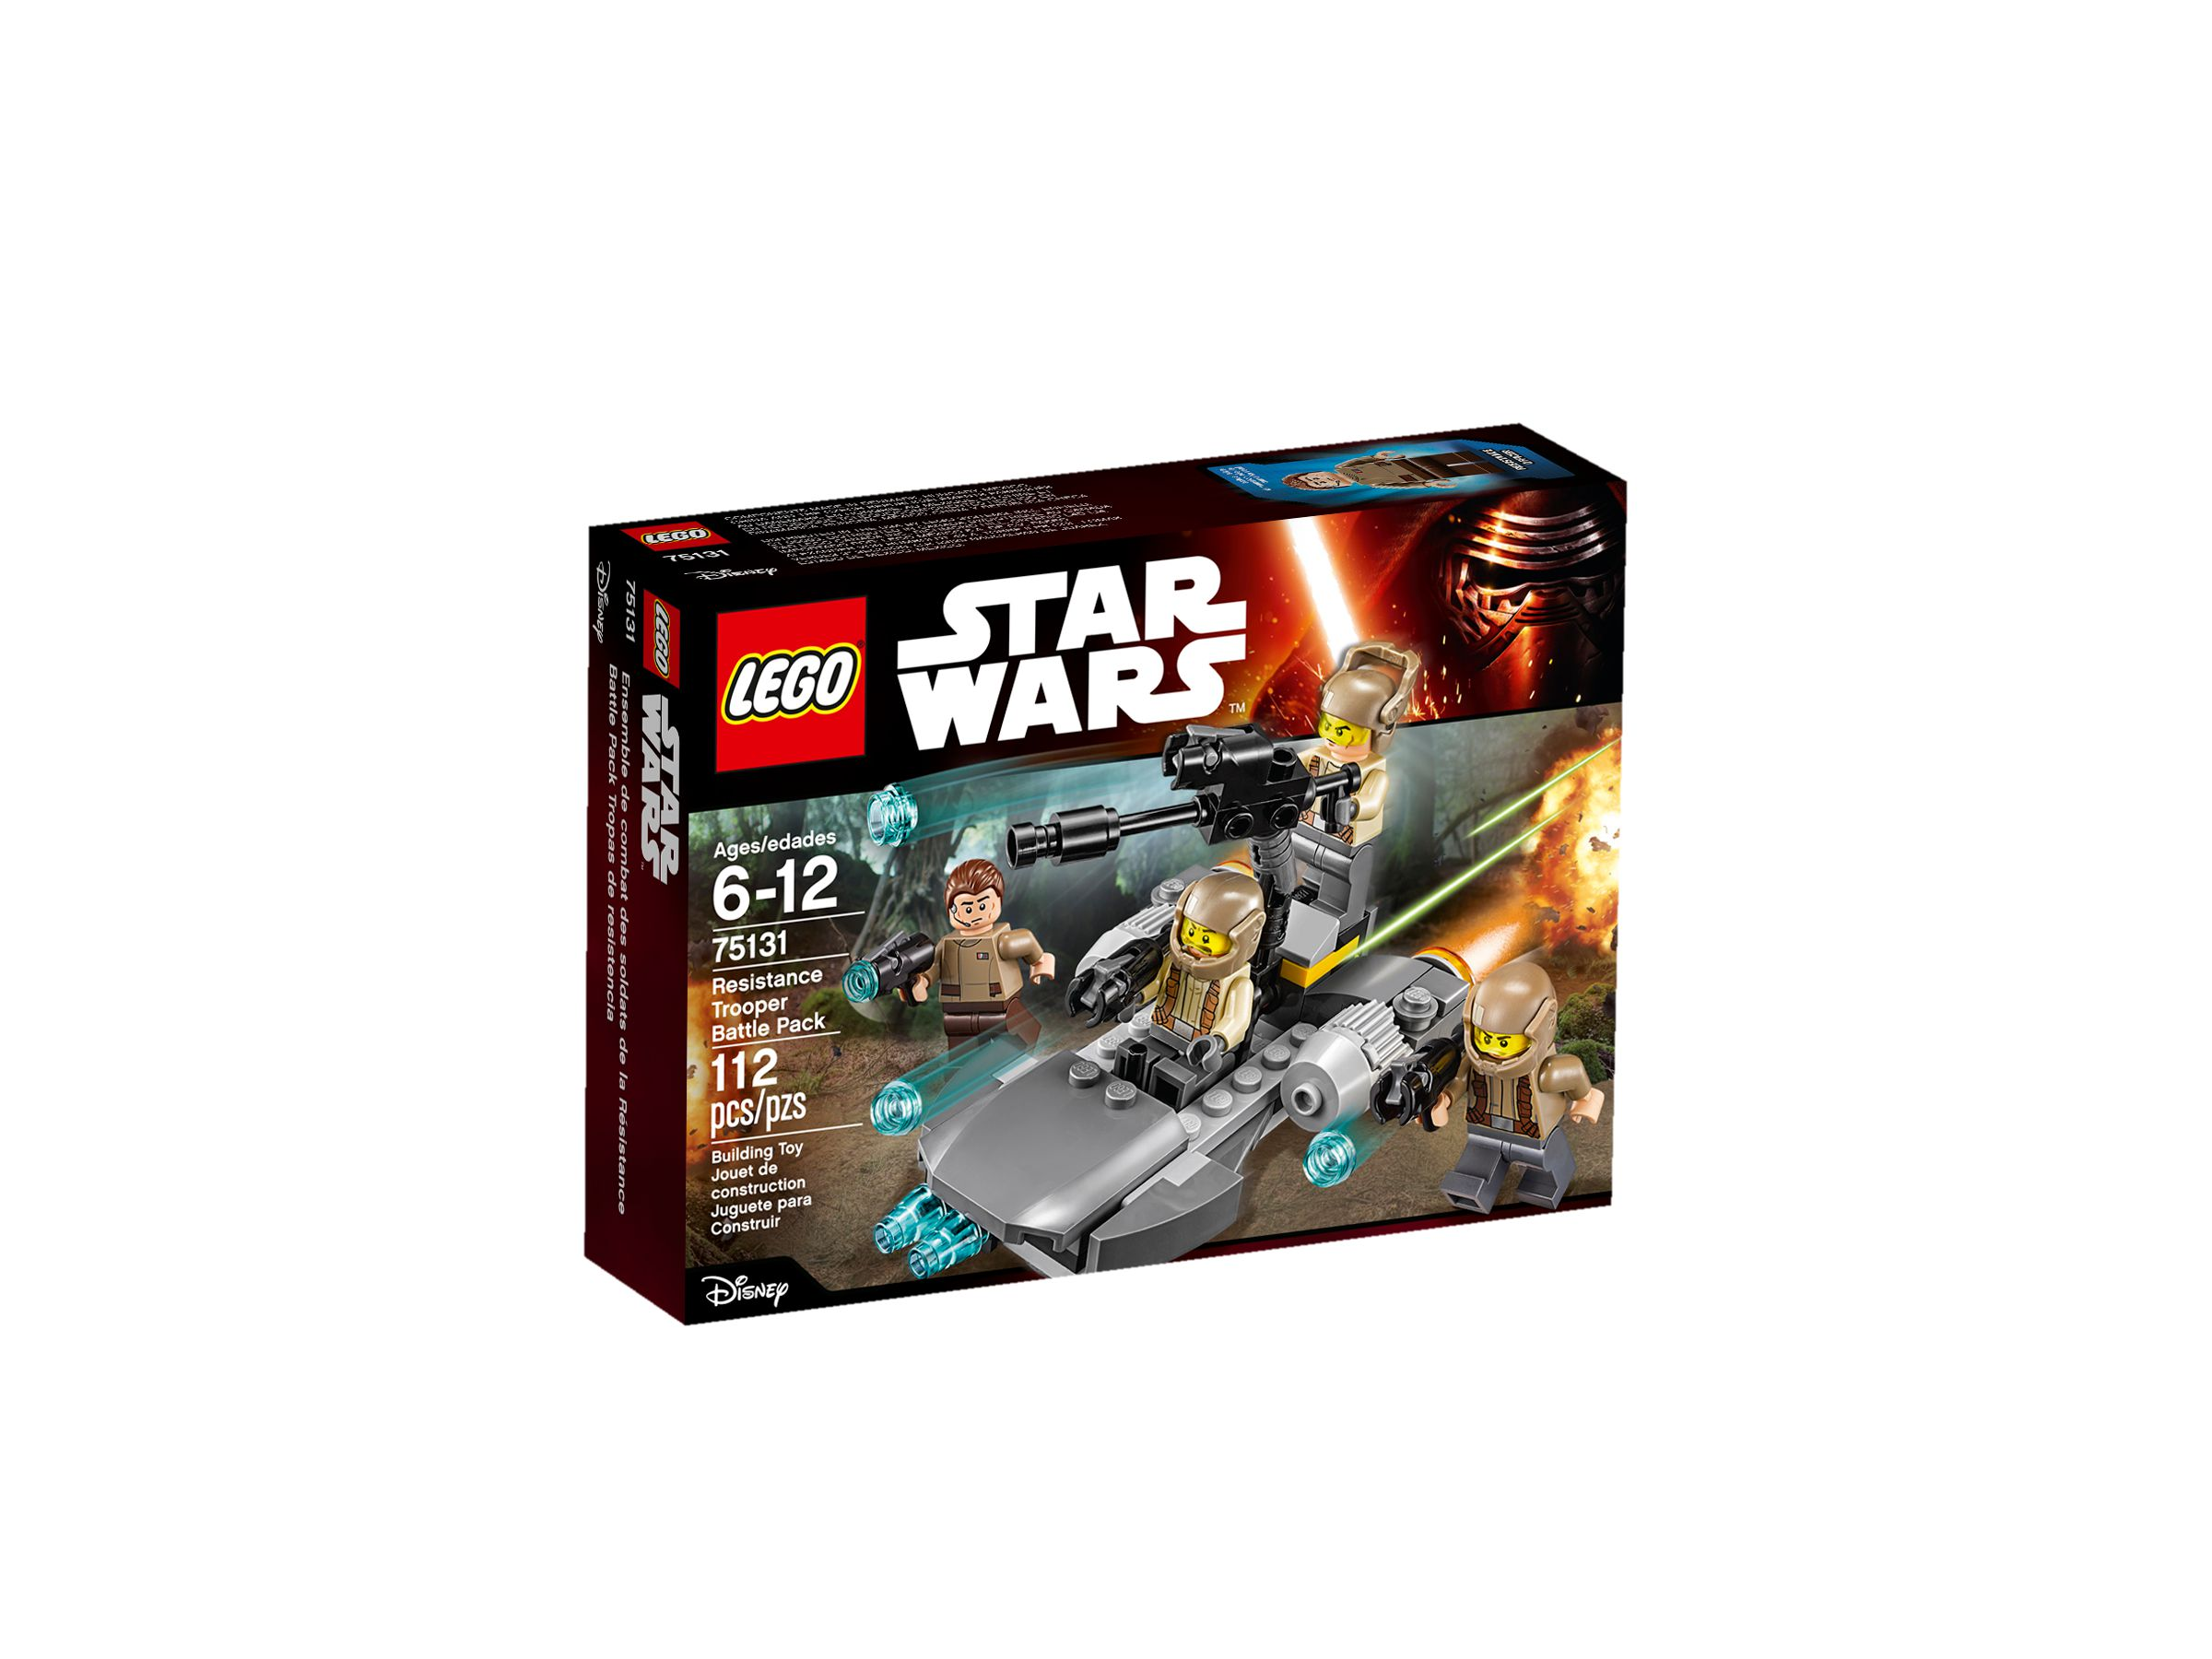 LEGO Star Wars 75131 Resistance Trooper Battle Pack LEGO_75131_alt1.jpg